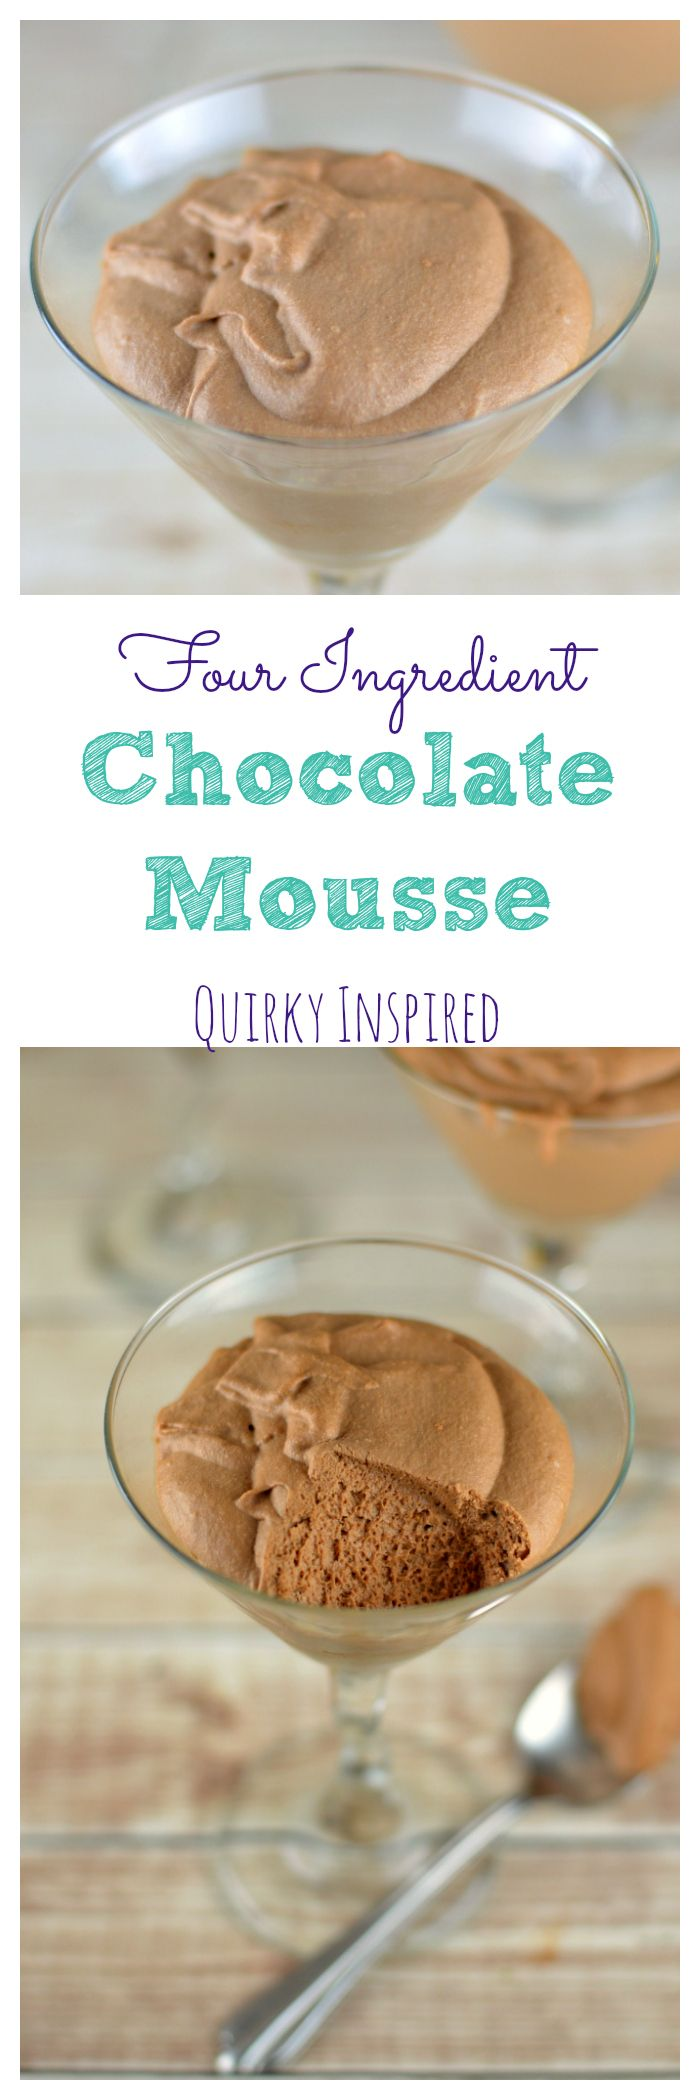 Best 25+ Easy chocolate mousse ideas on Pinterest | Chocolate ...